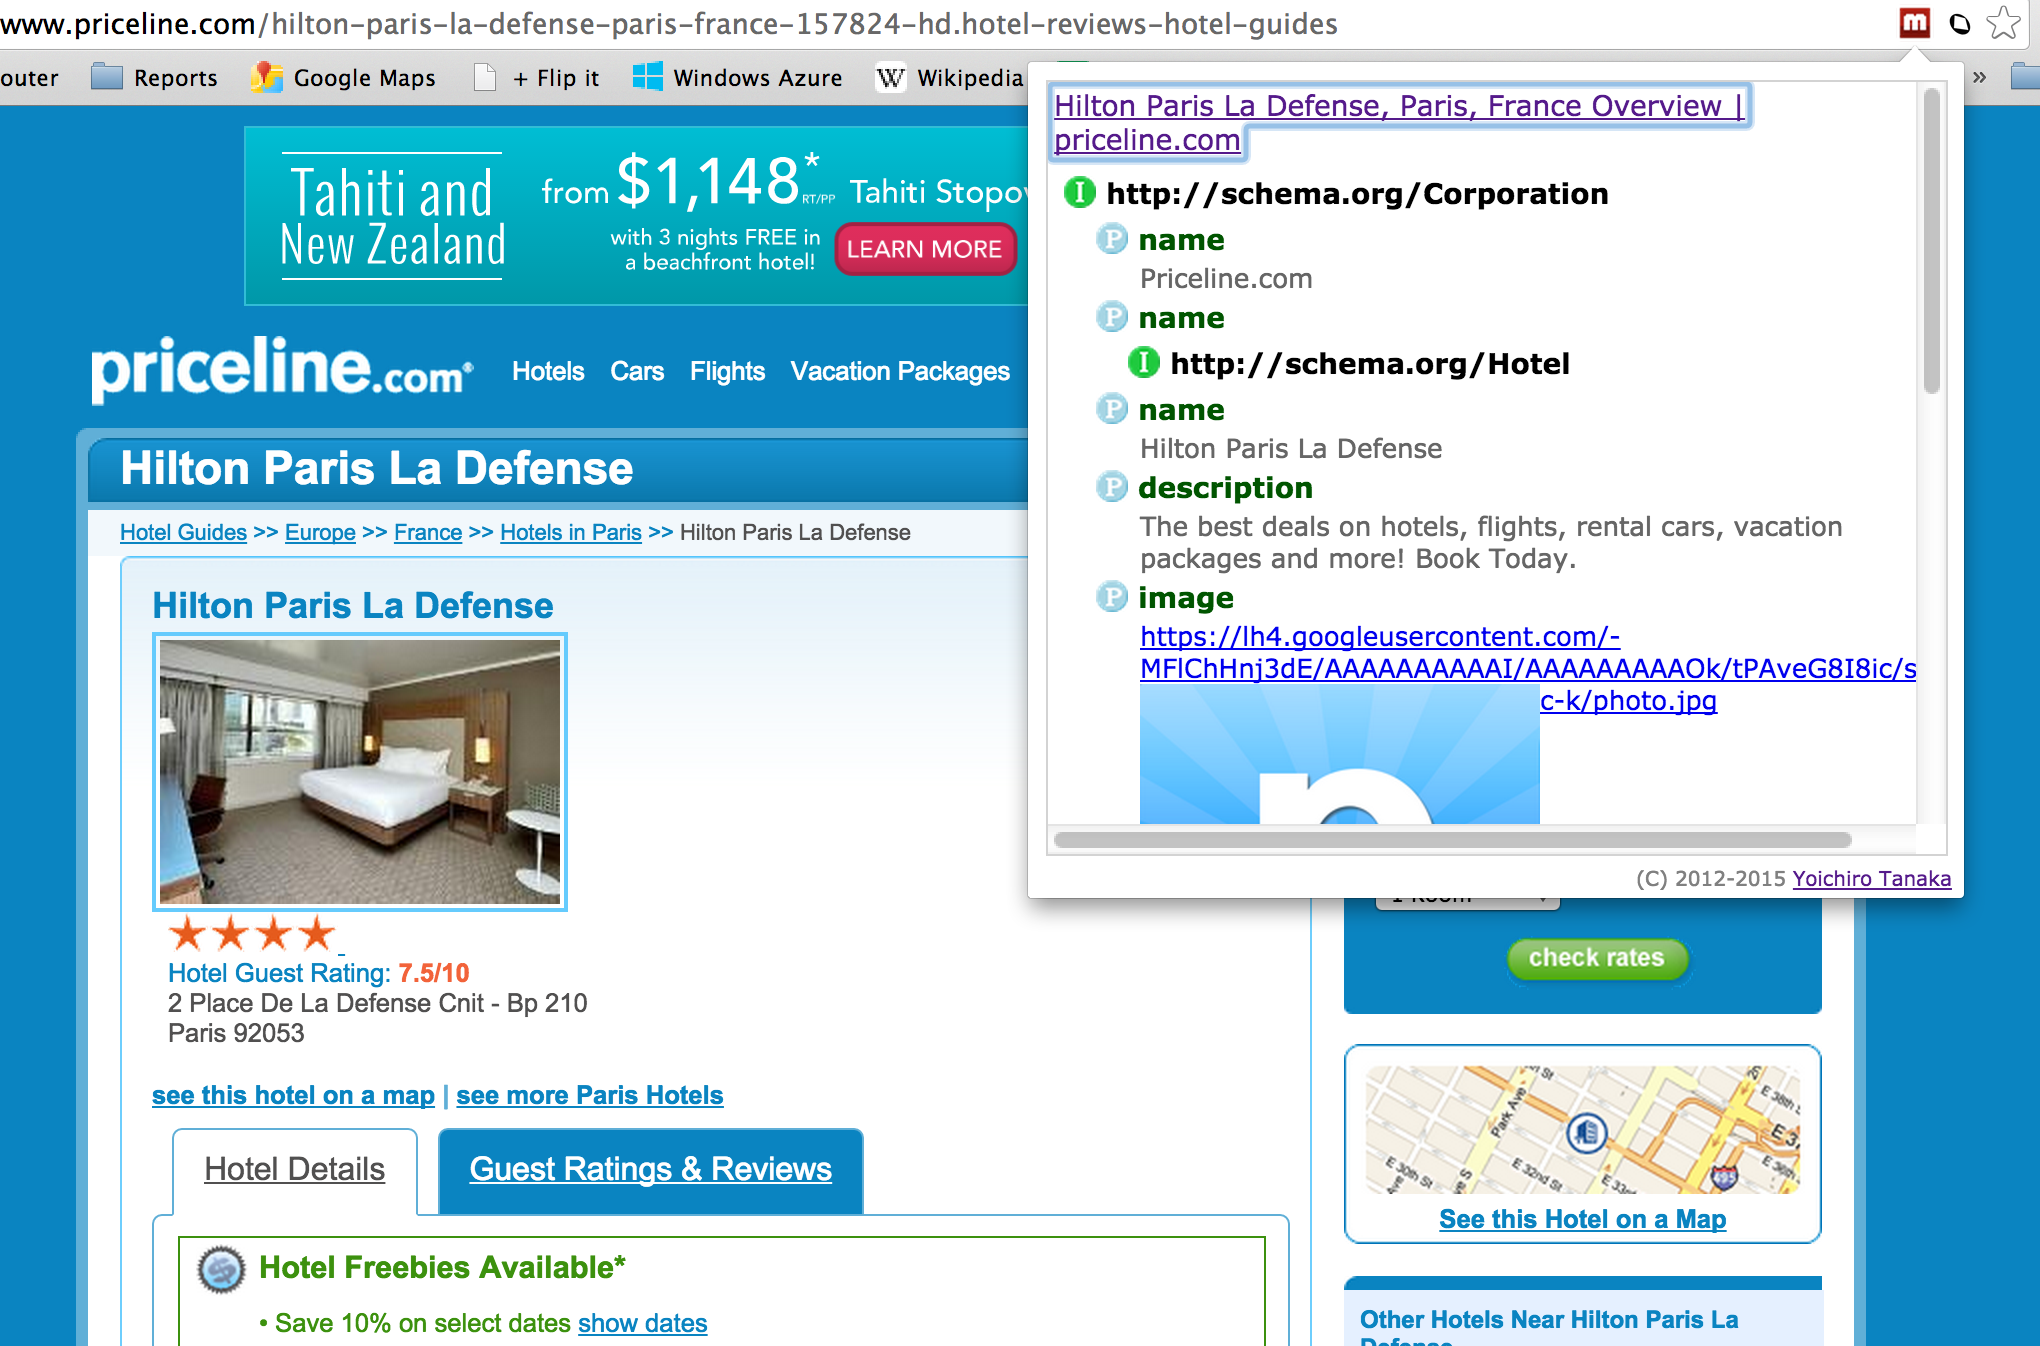 Pricelinecom page showcasing use of HTML5Microdata based